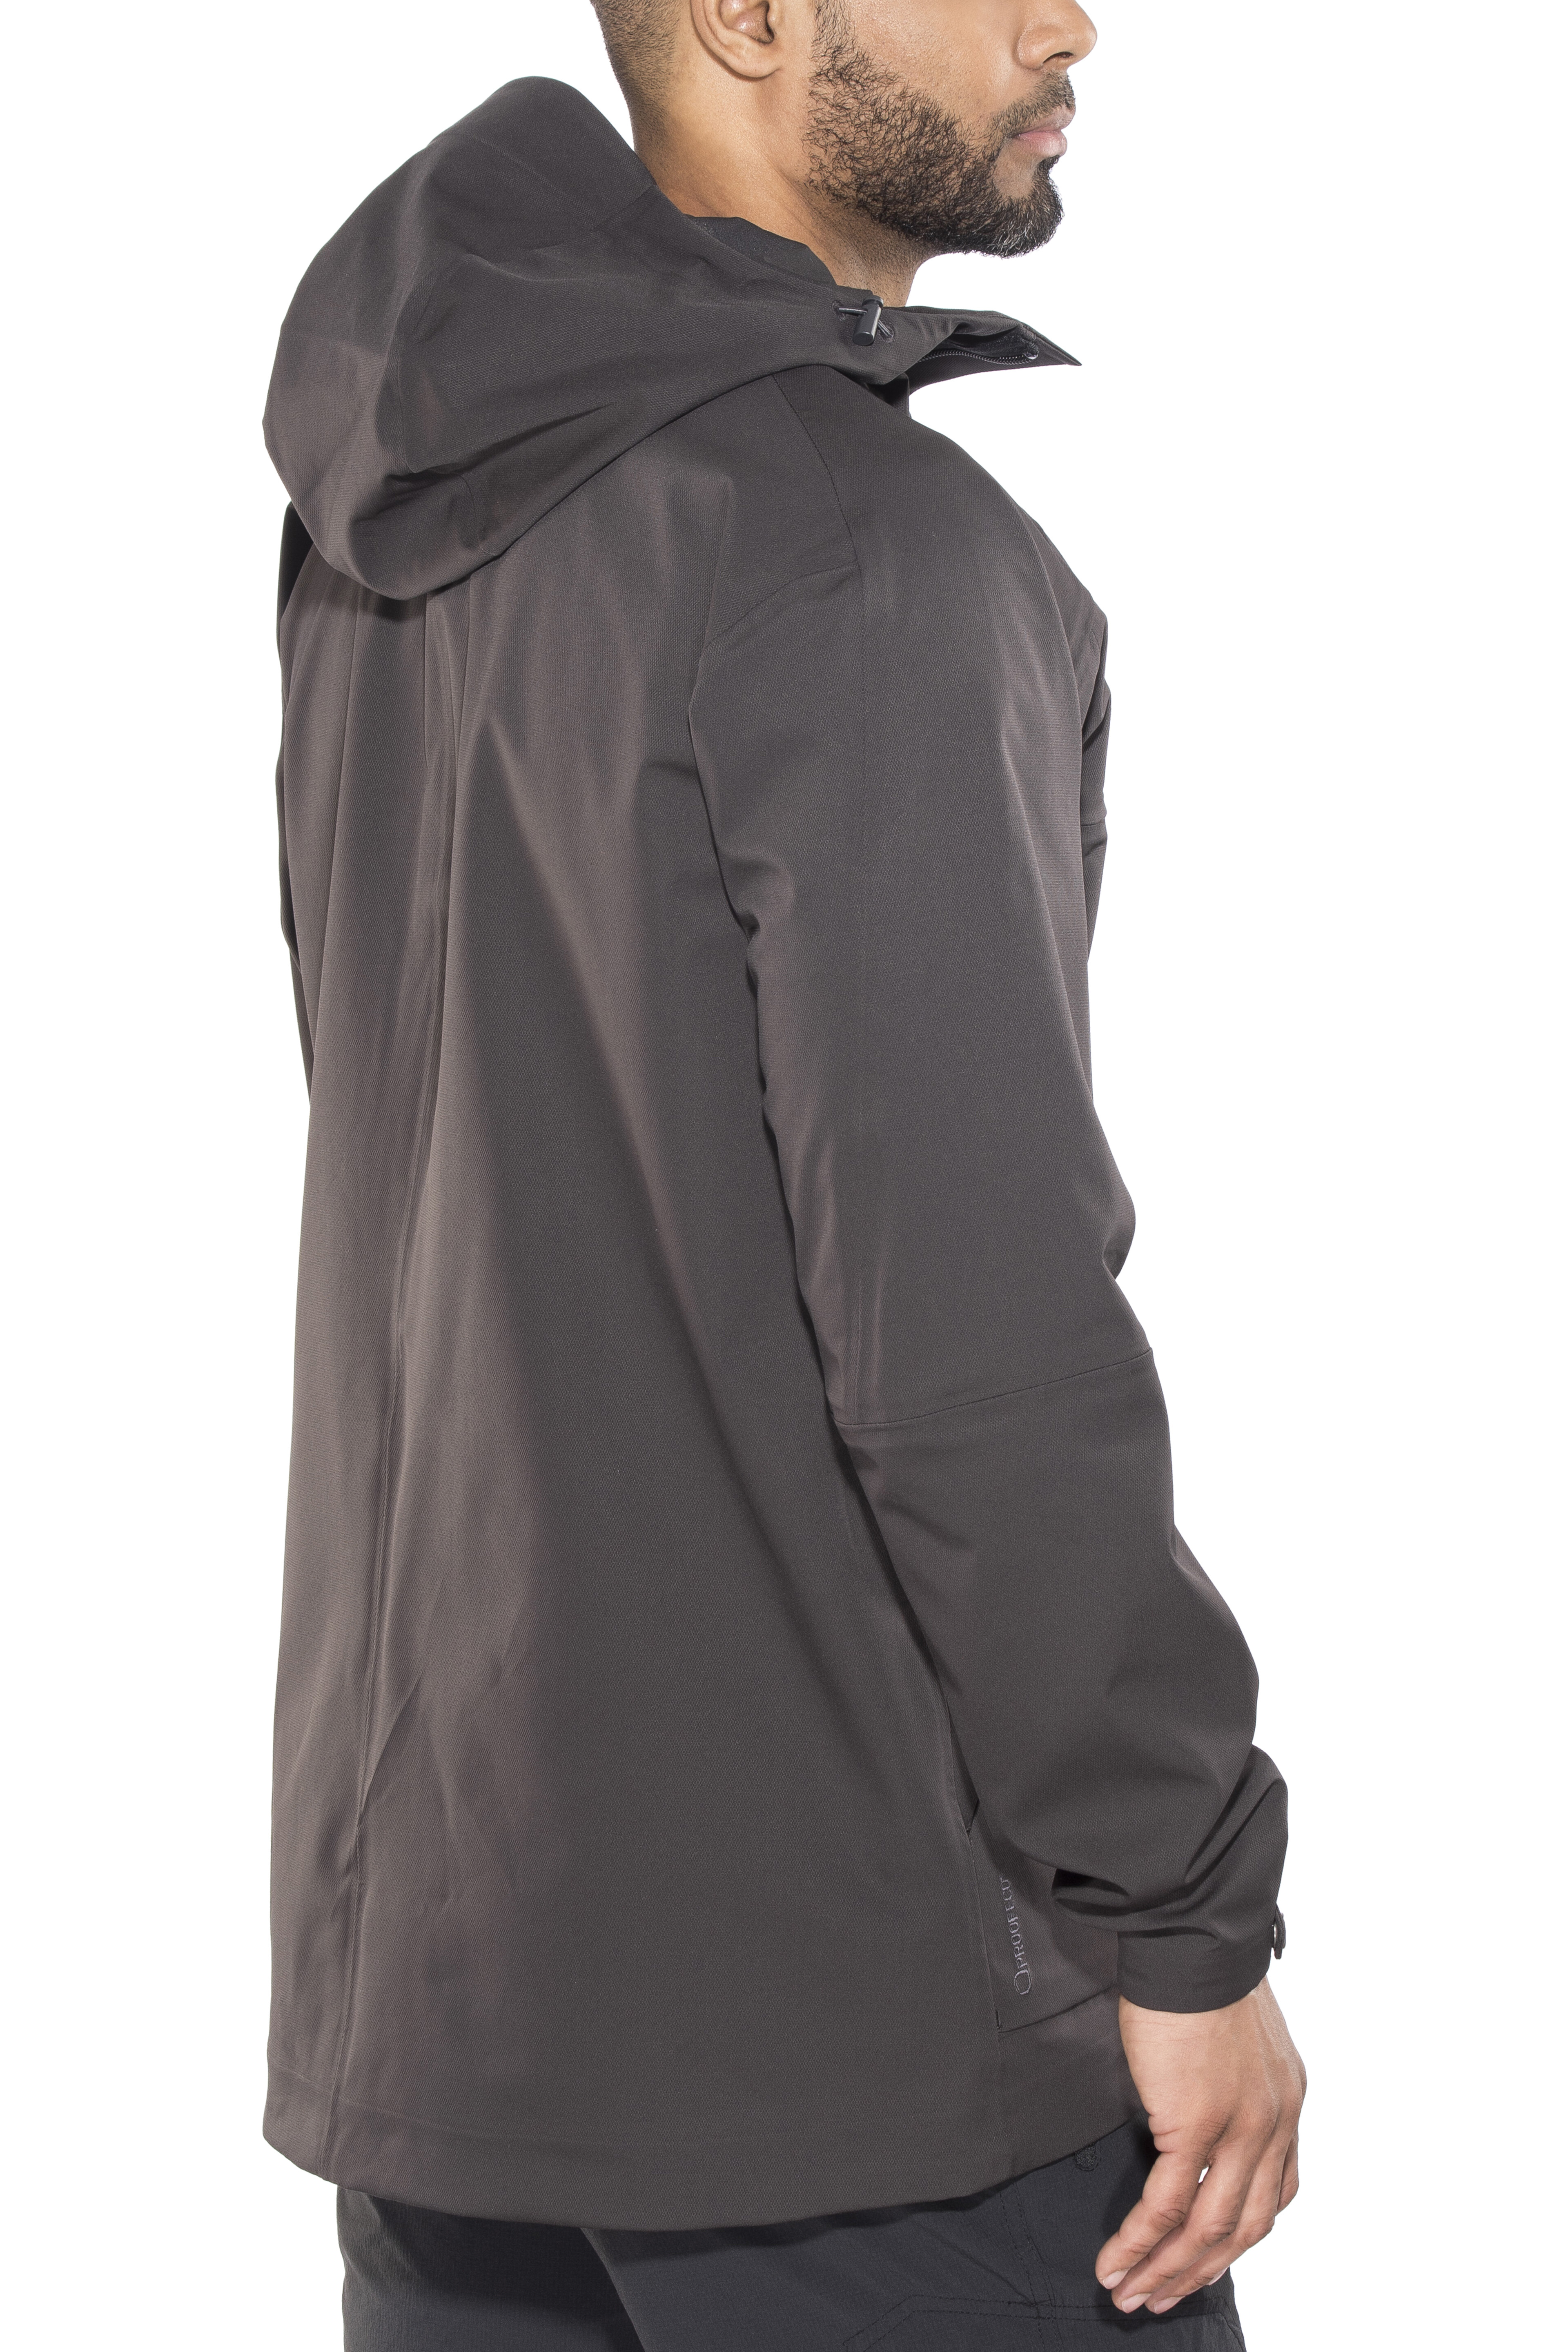 6103e3adbd4 Haglöfs Eco Proof Jacket Men grey at Addnature.co.uk